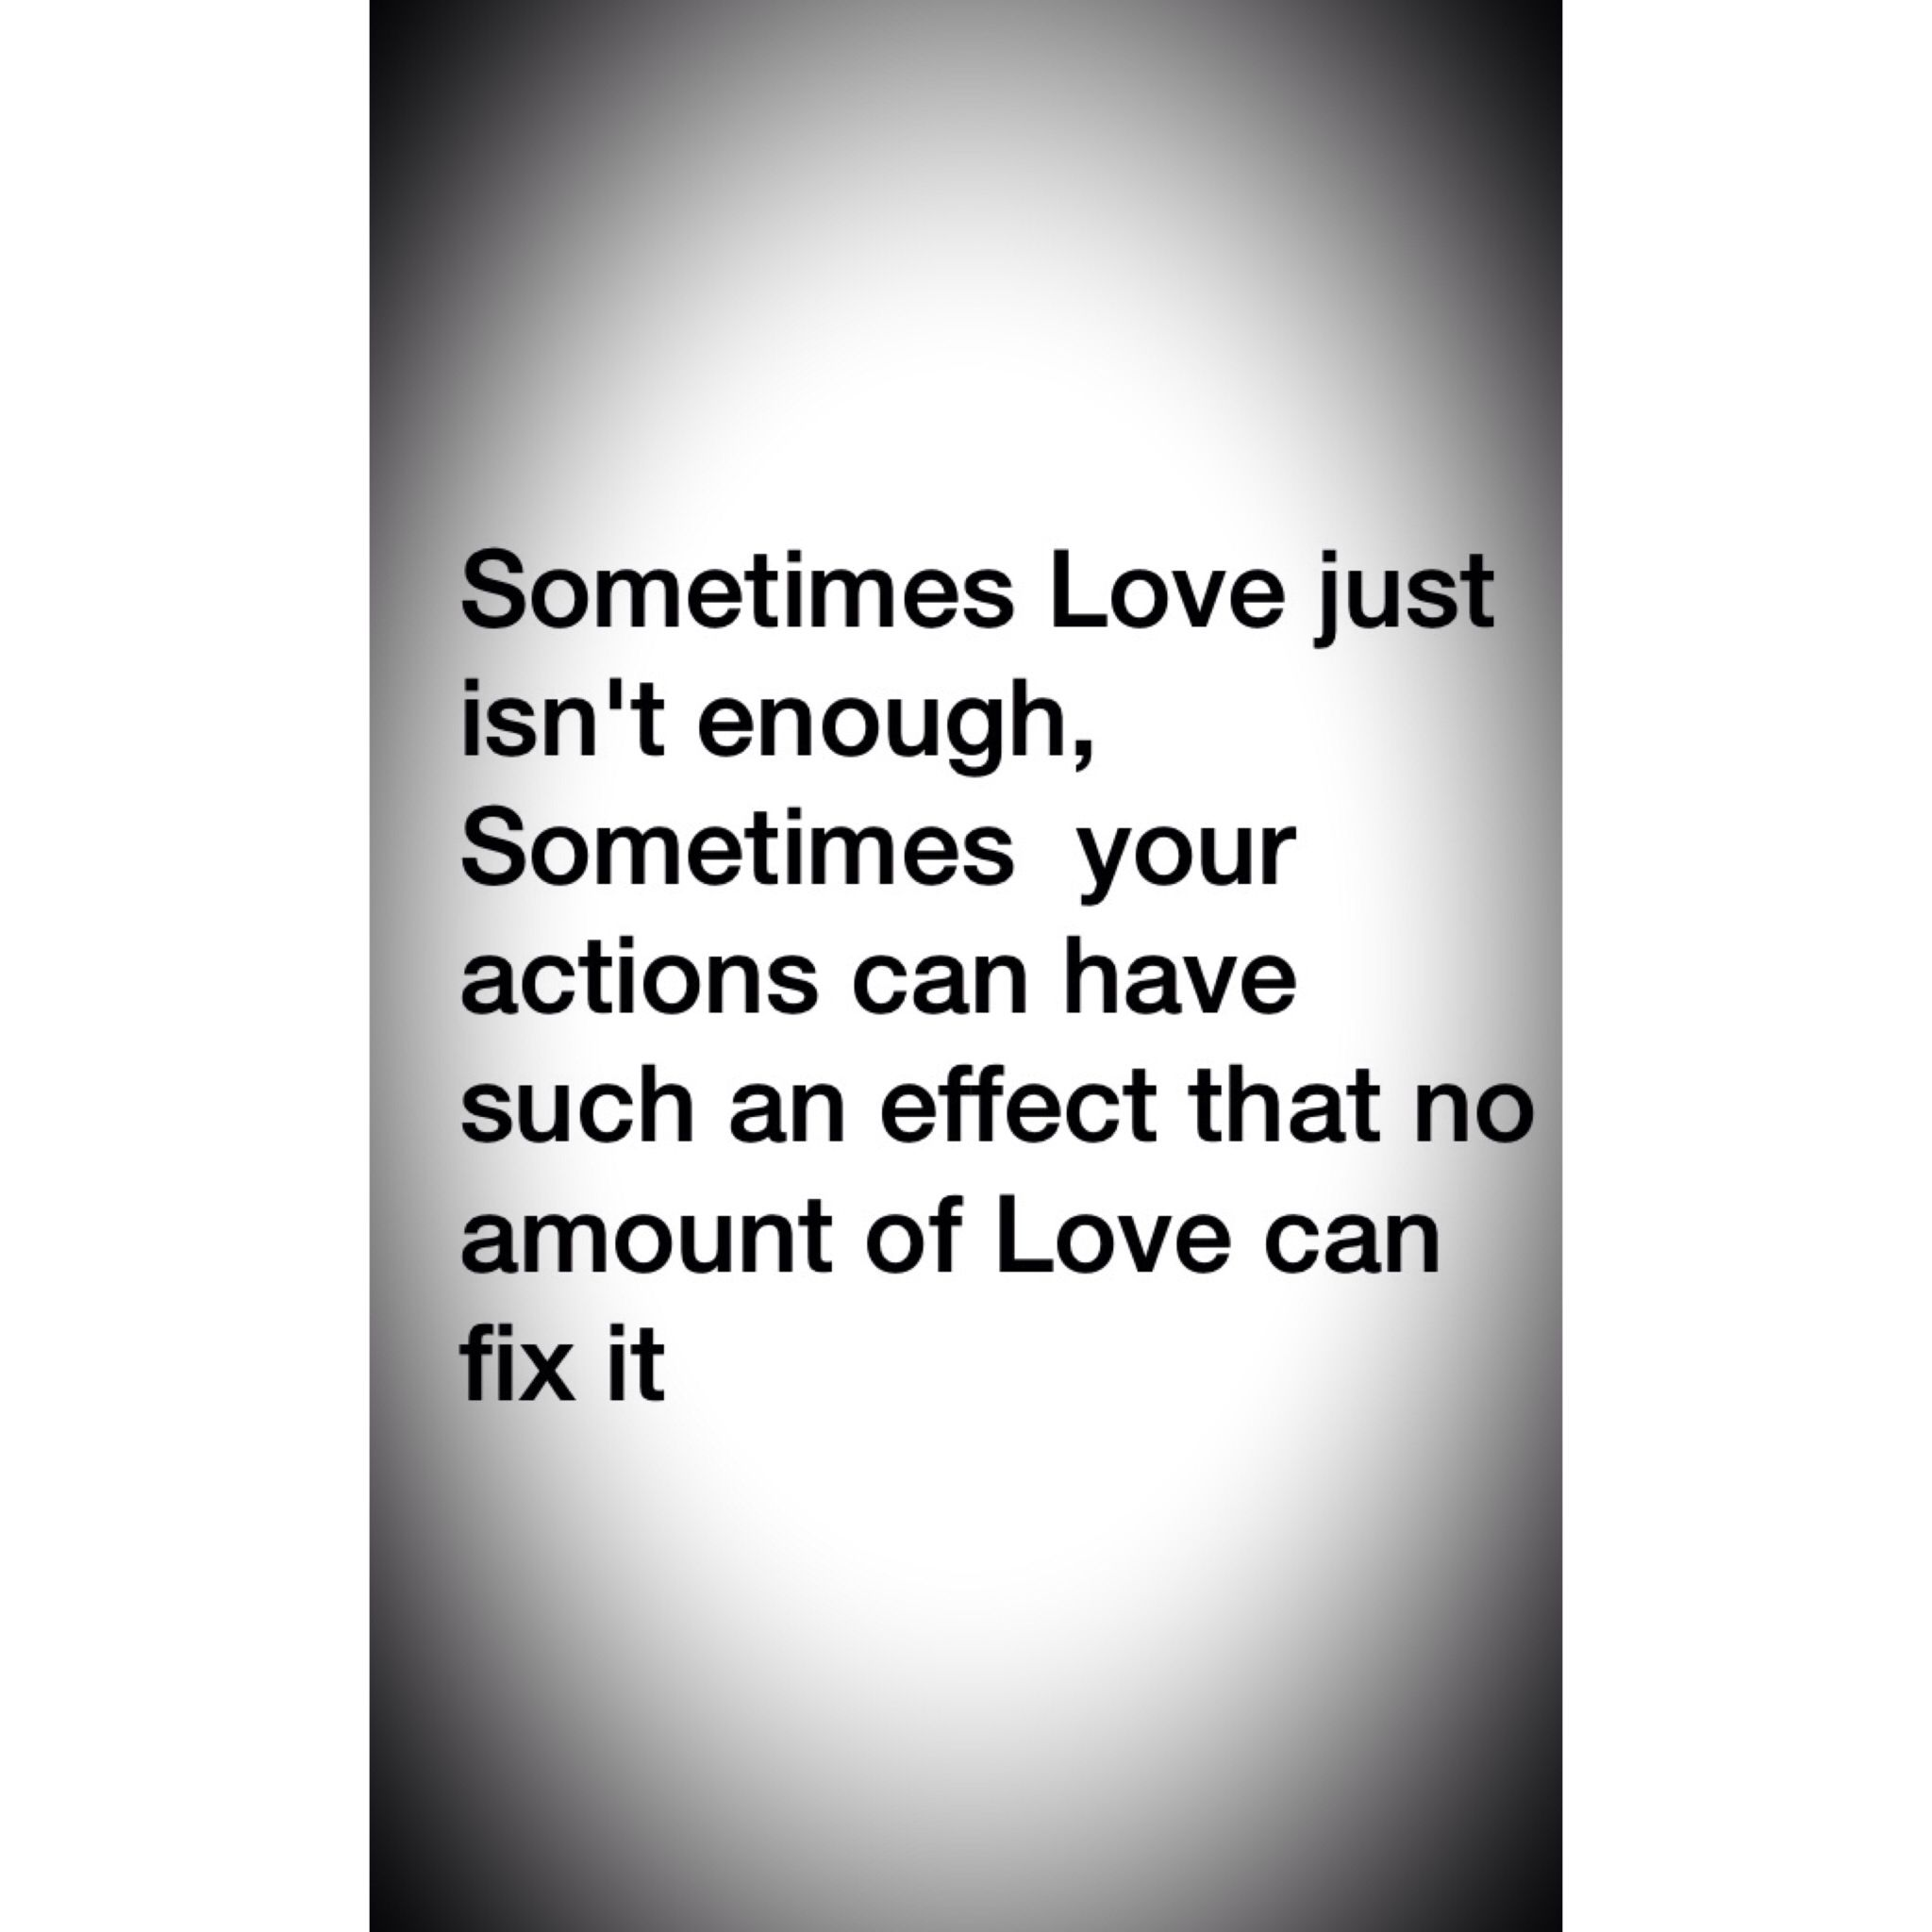 When love isnt enough